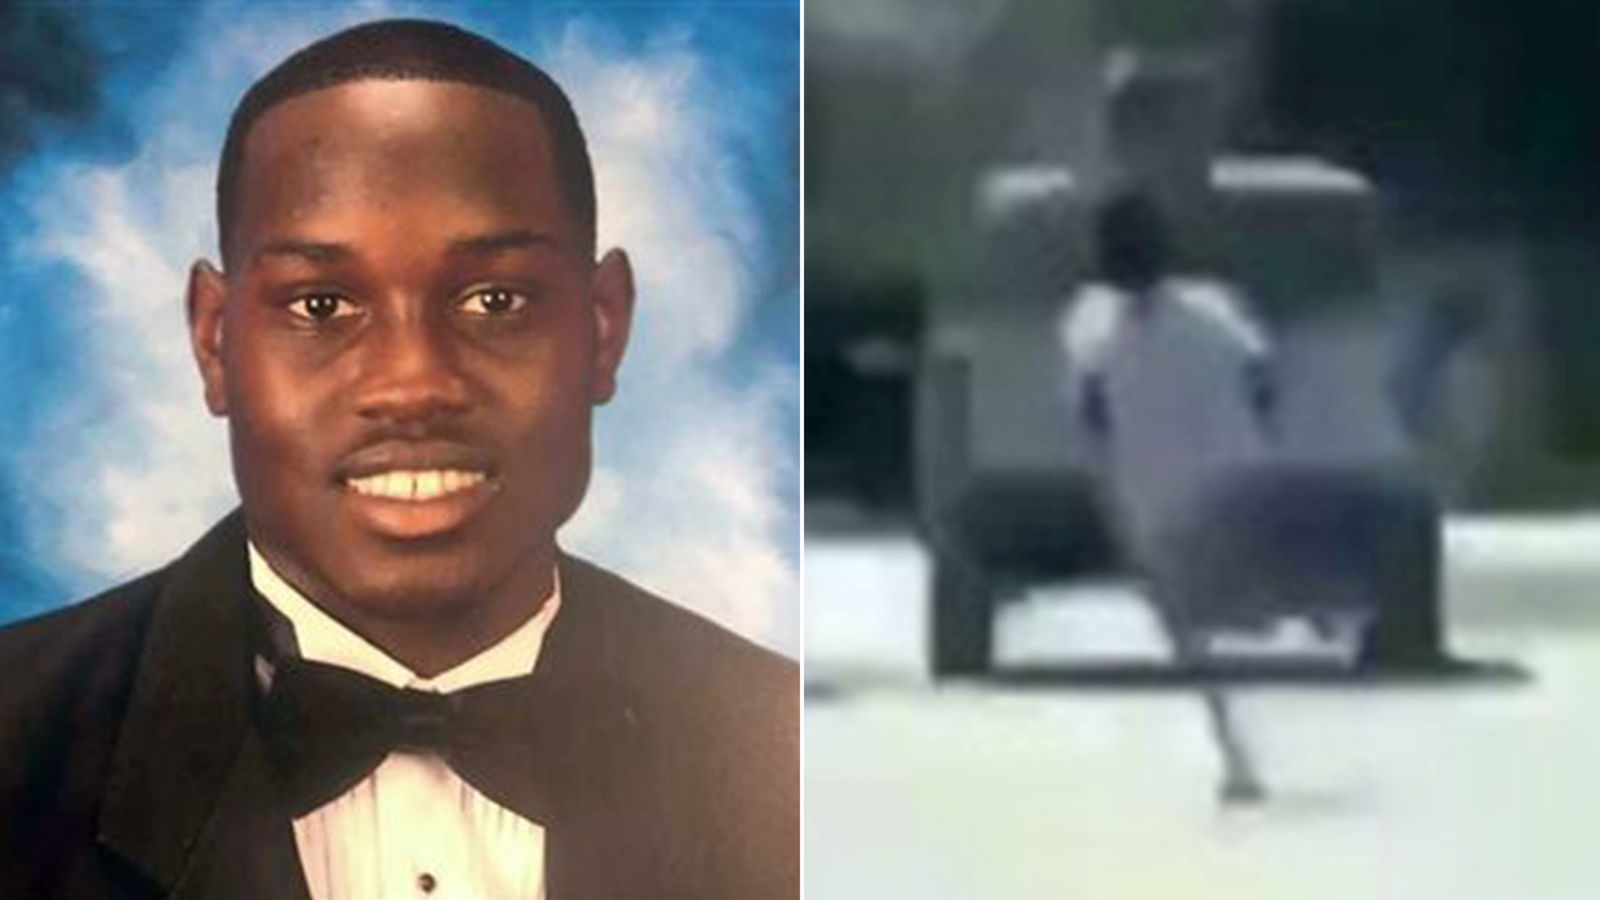 Ahmaud Arbery Outrage Over Video Of Unarmed Black Jogger